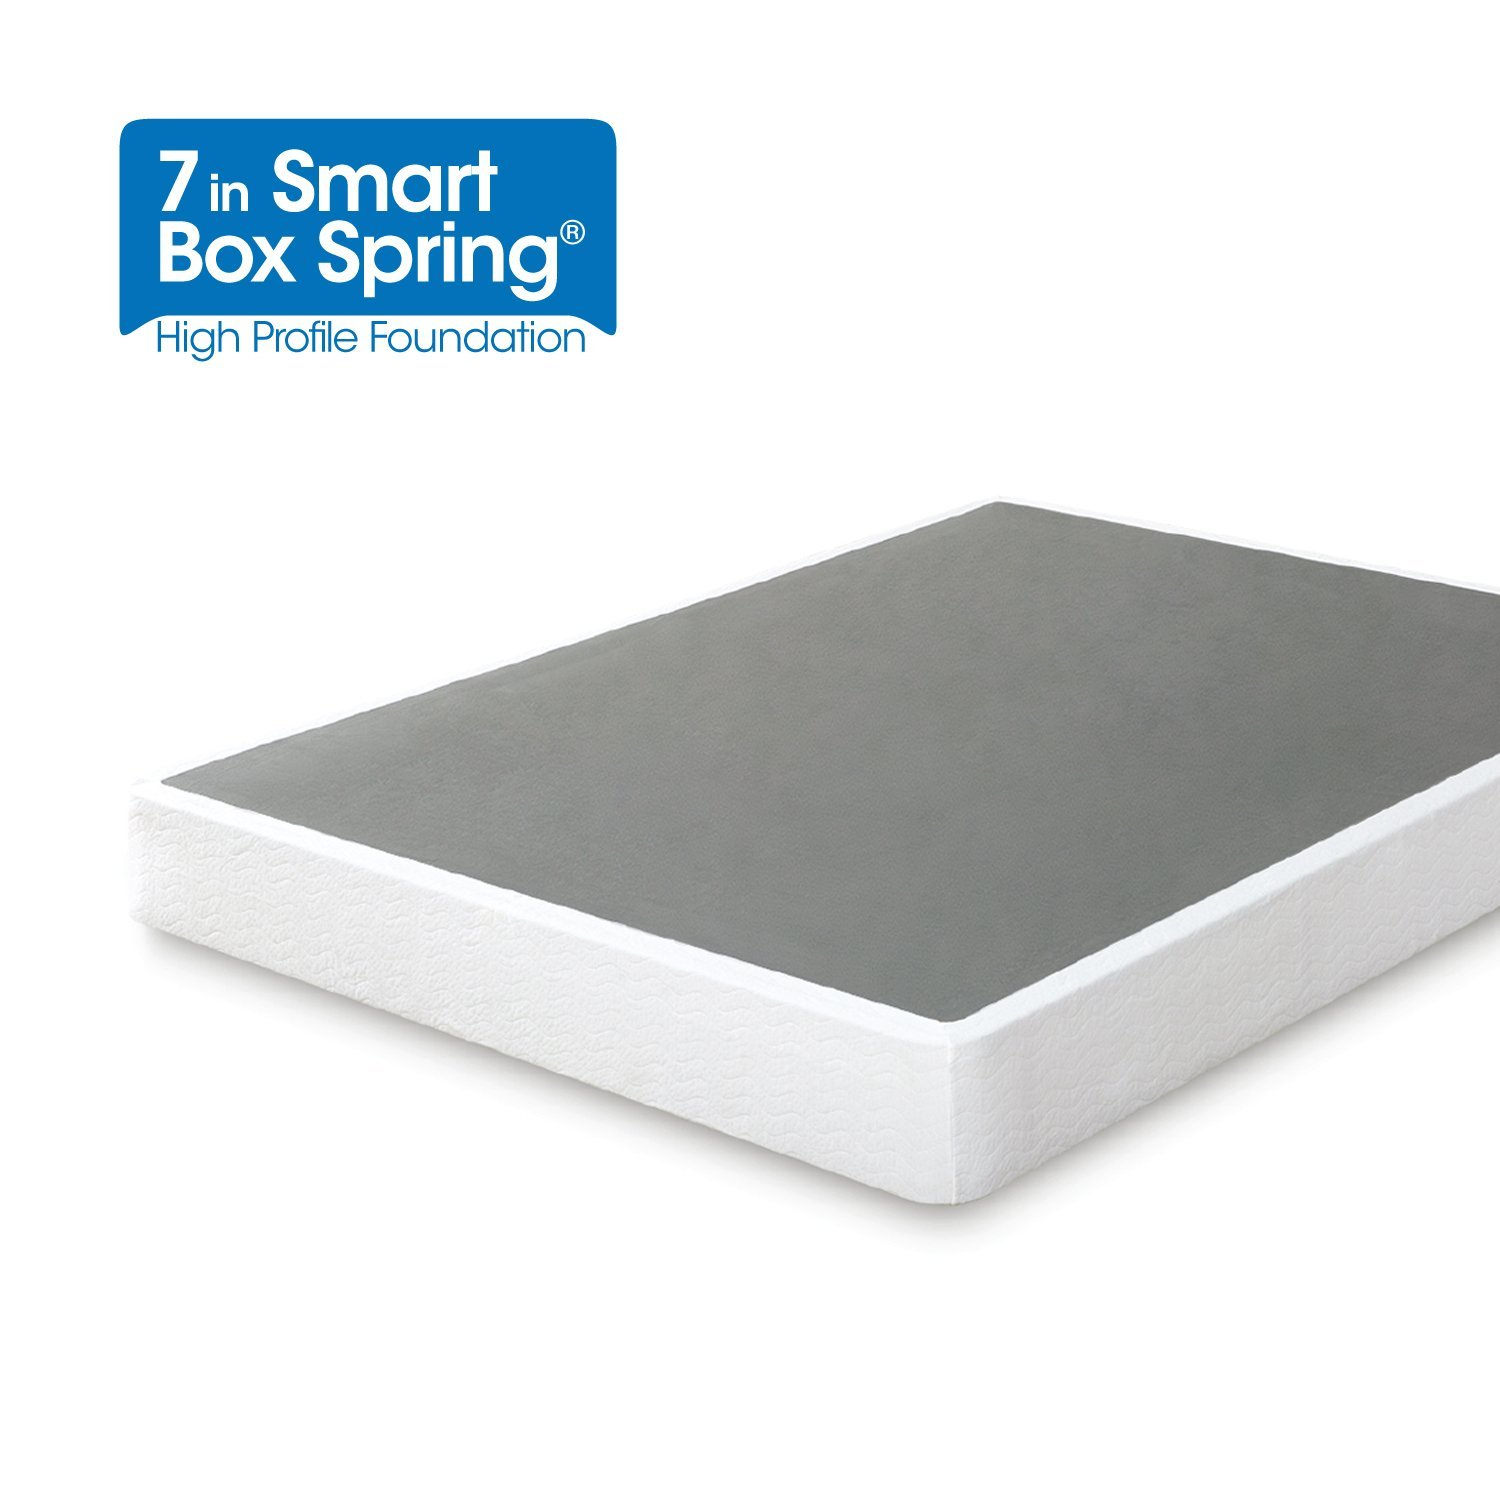 Zinus 7 inch Smart Box Spring/Mattress Foundation/Strong Steel Structure/Easy Assembly Required, Twin XL OLB-ABS-7TXL